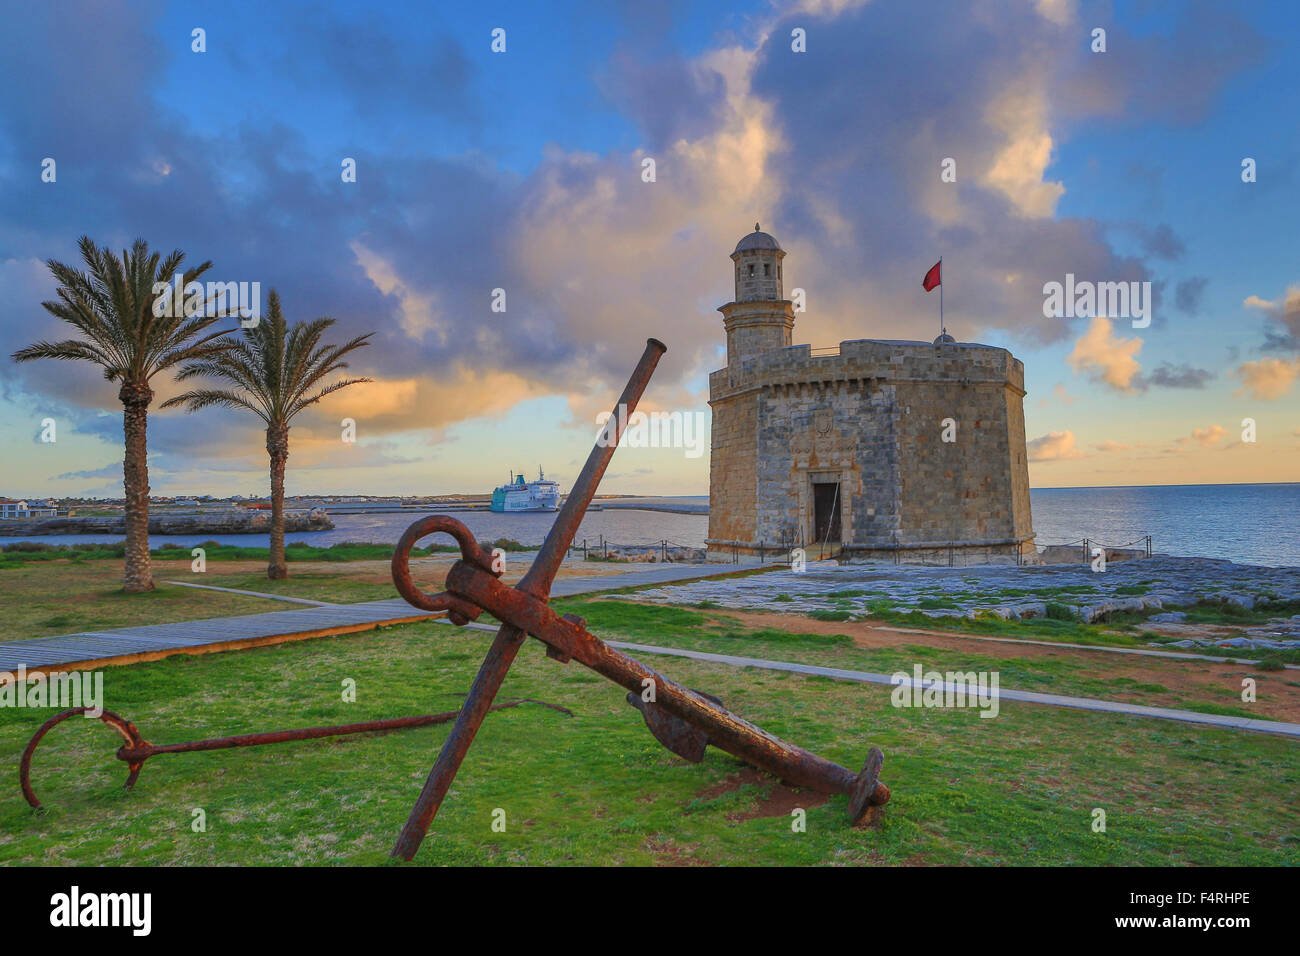 Balearic Islands, Ciutadella, town, Menorca, Island, Sant Nicolau, Spain, Europe, Spring, anchor, architecture, Stock Photo